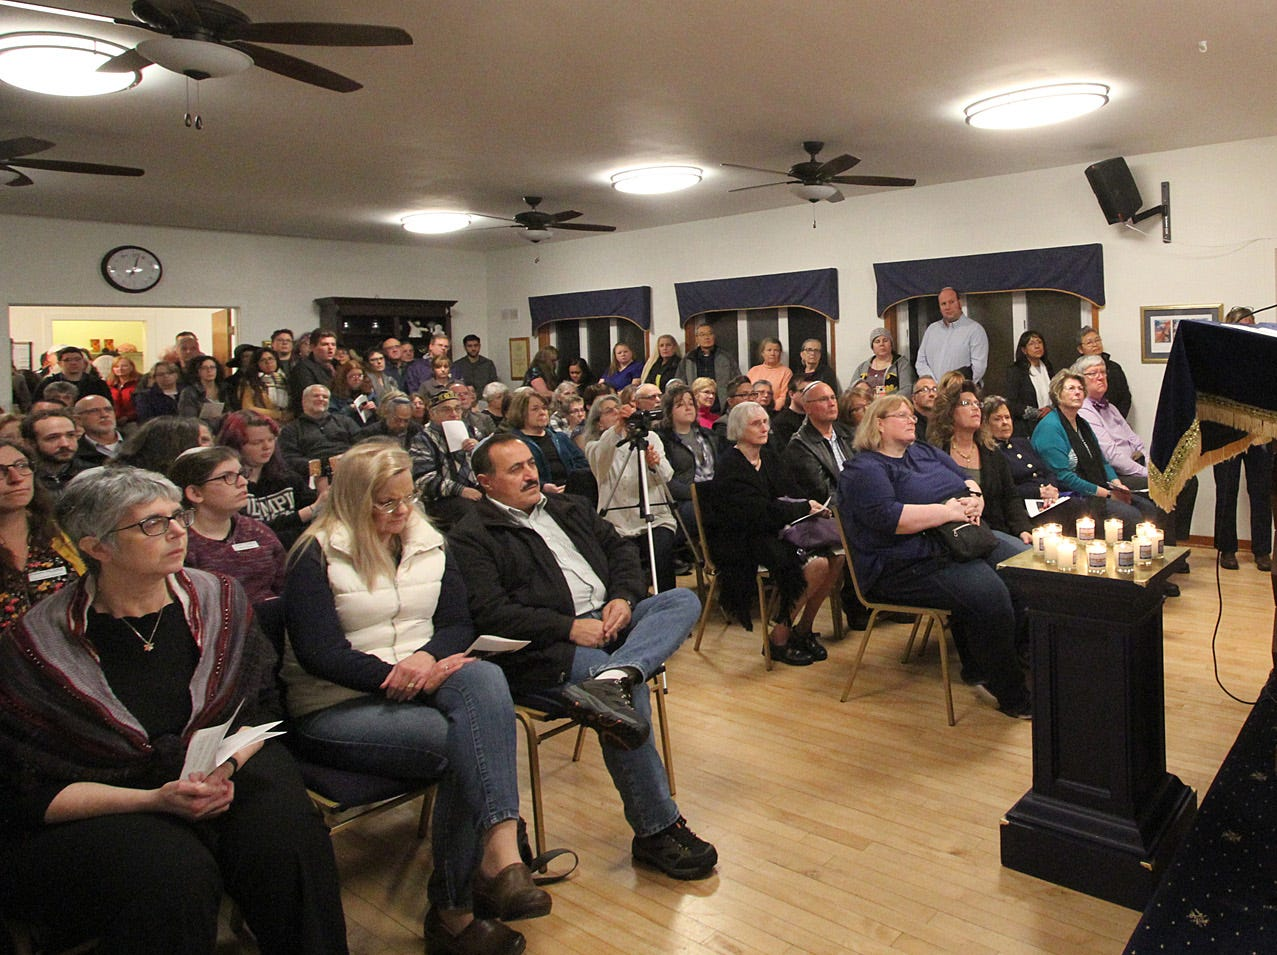 The Beth Hatikvah (House of Hope) Synagogue in Bremerton held a memorial service for the Tree of Life Synagogue shootings Tuesday night in Bremerton. Rabbi Mitch Delcau speaks to his congregation.